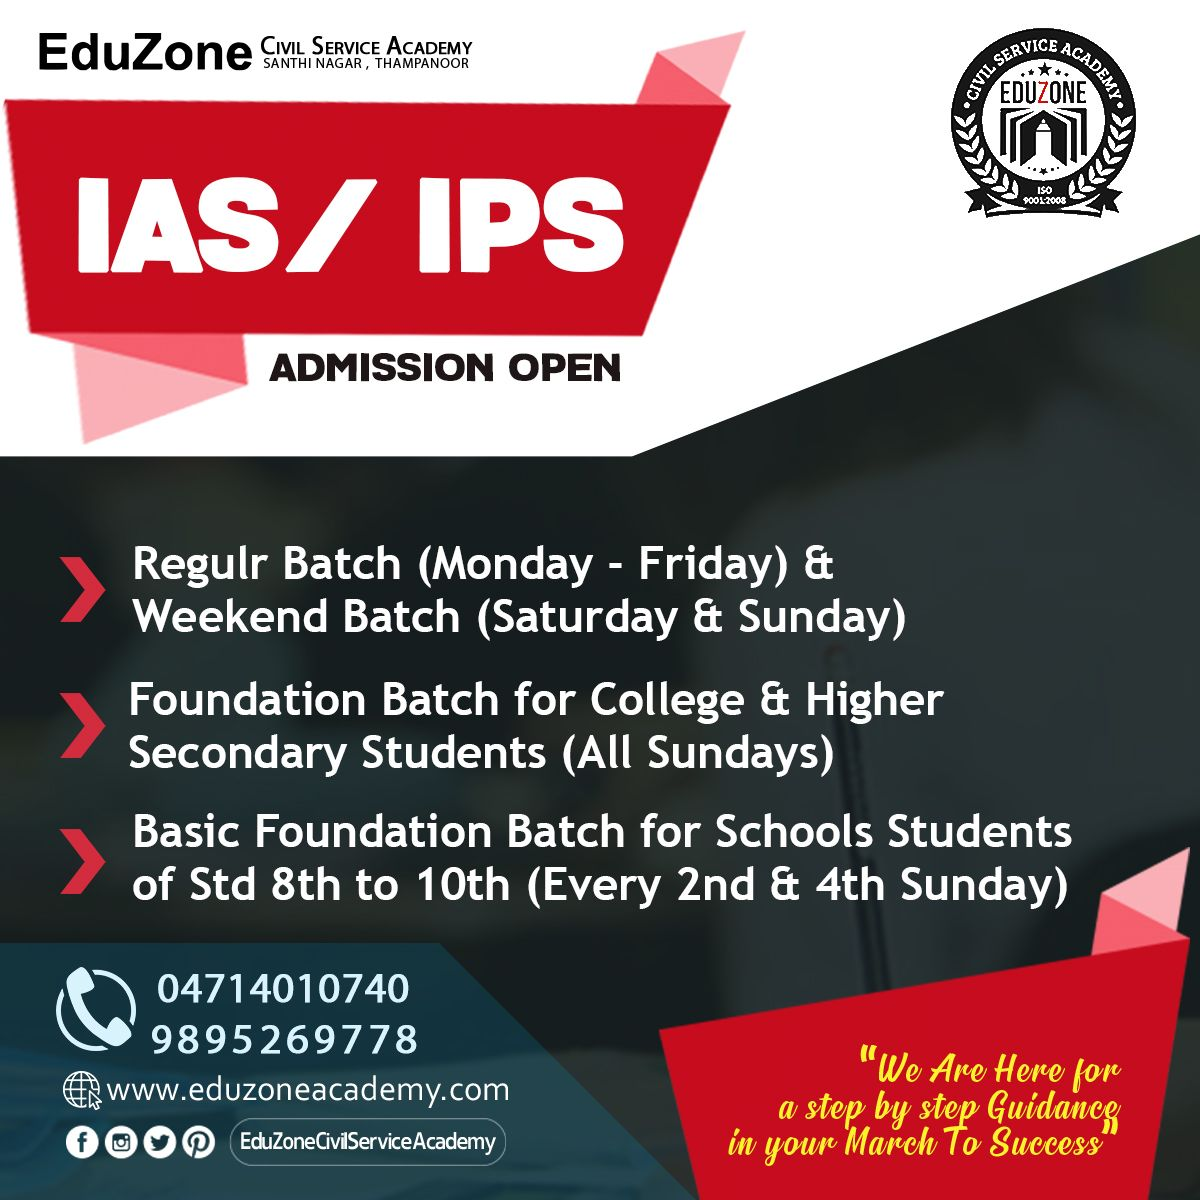 ADMISSION STARTED! Hurry up!! only limited seats available